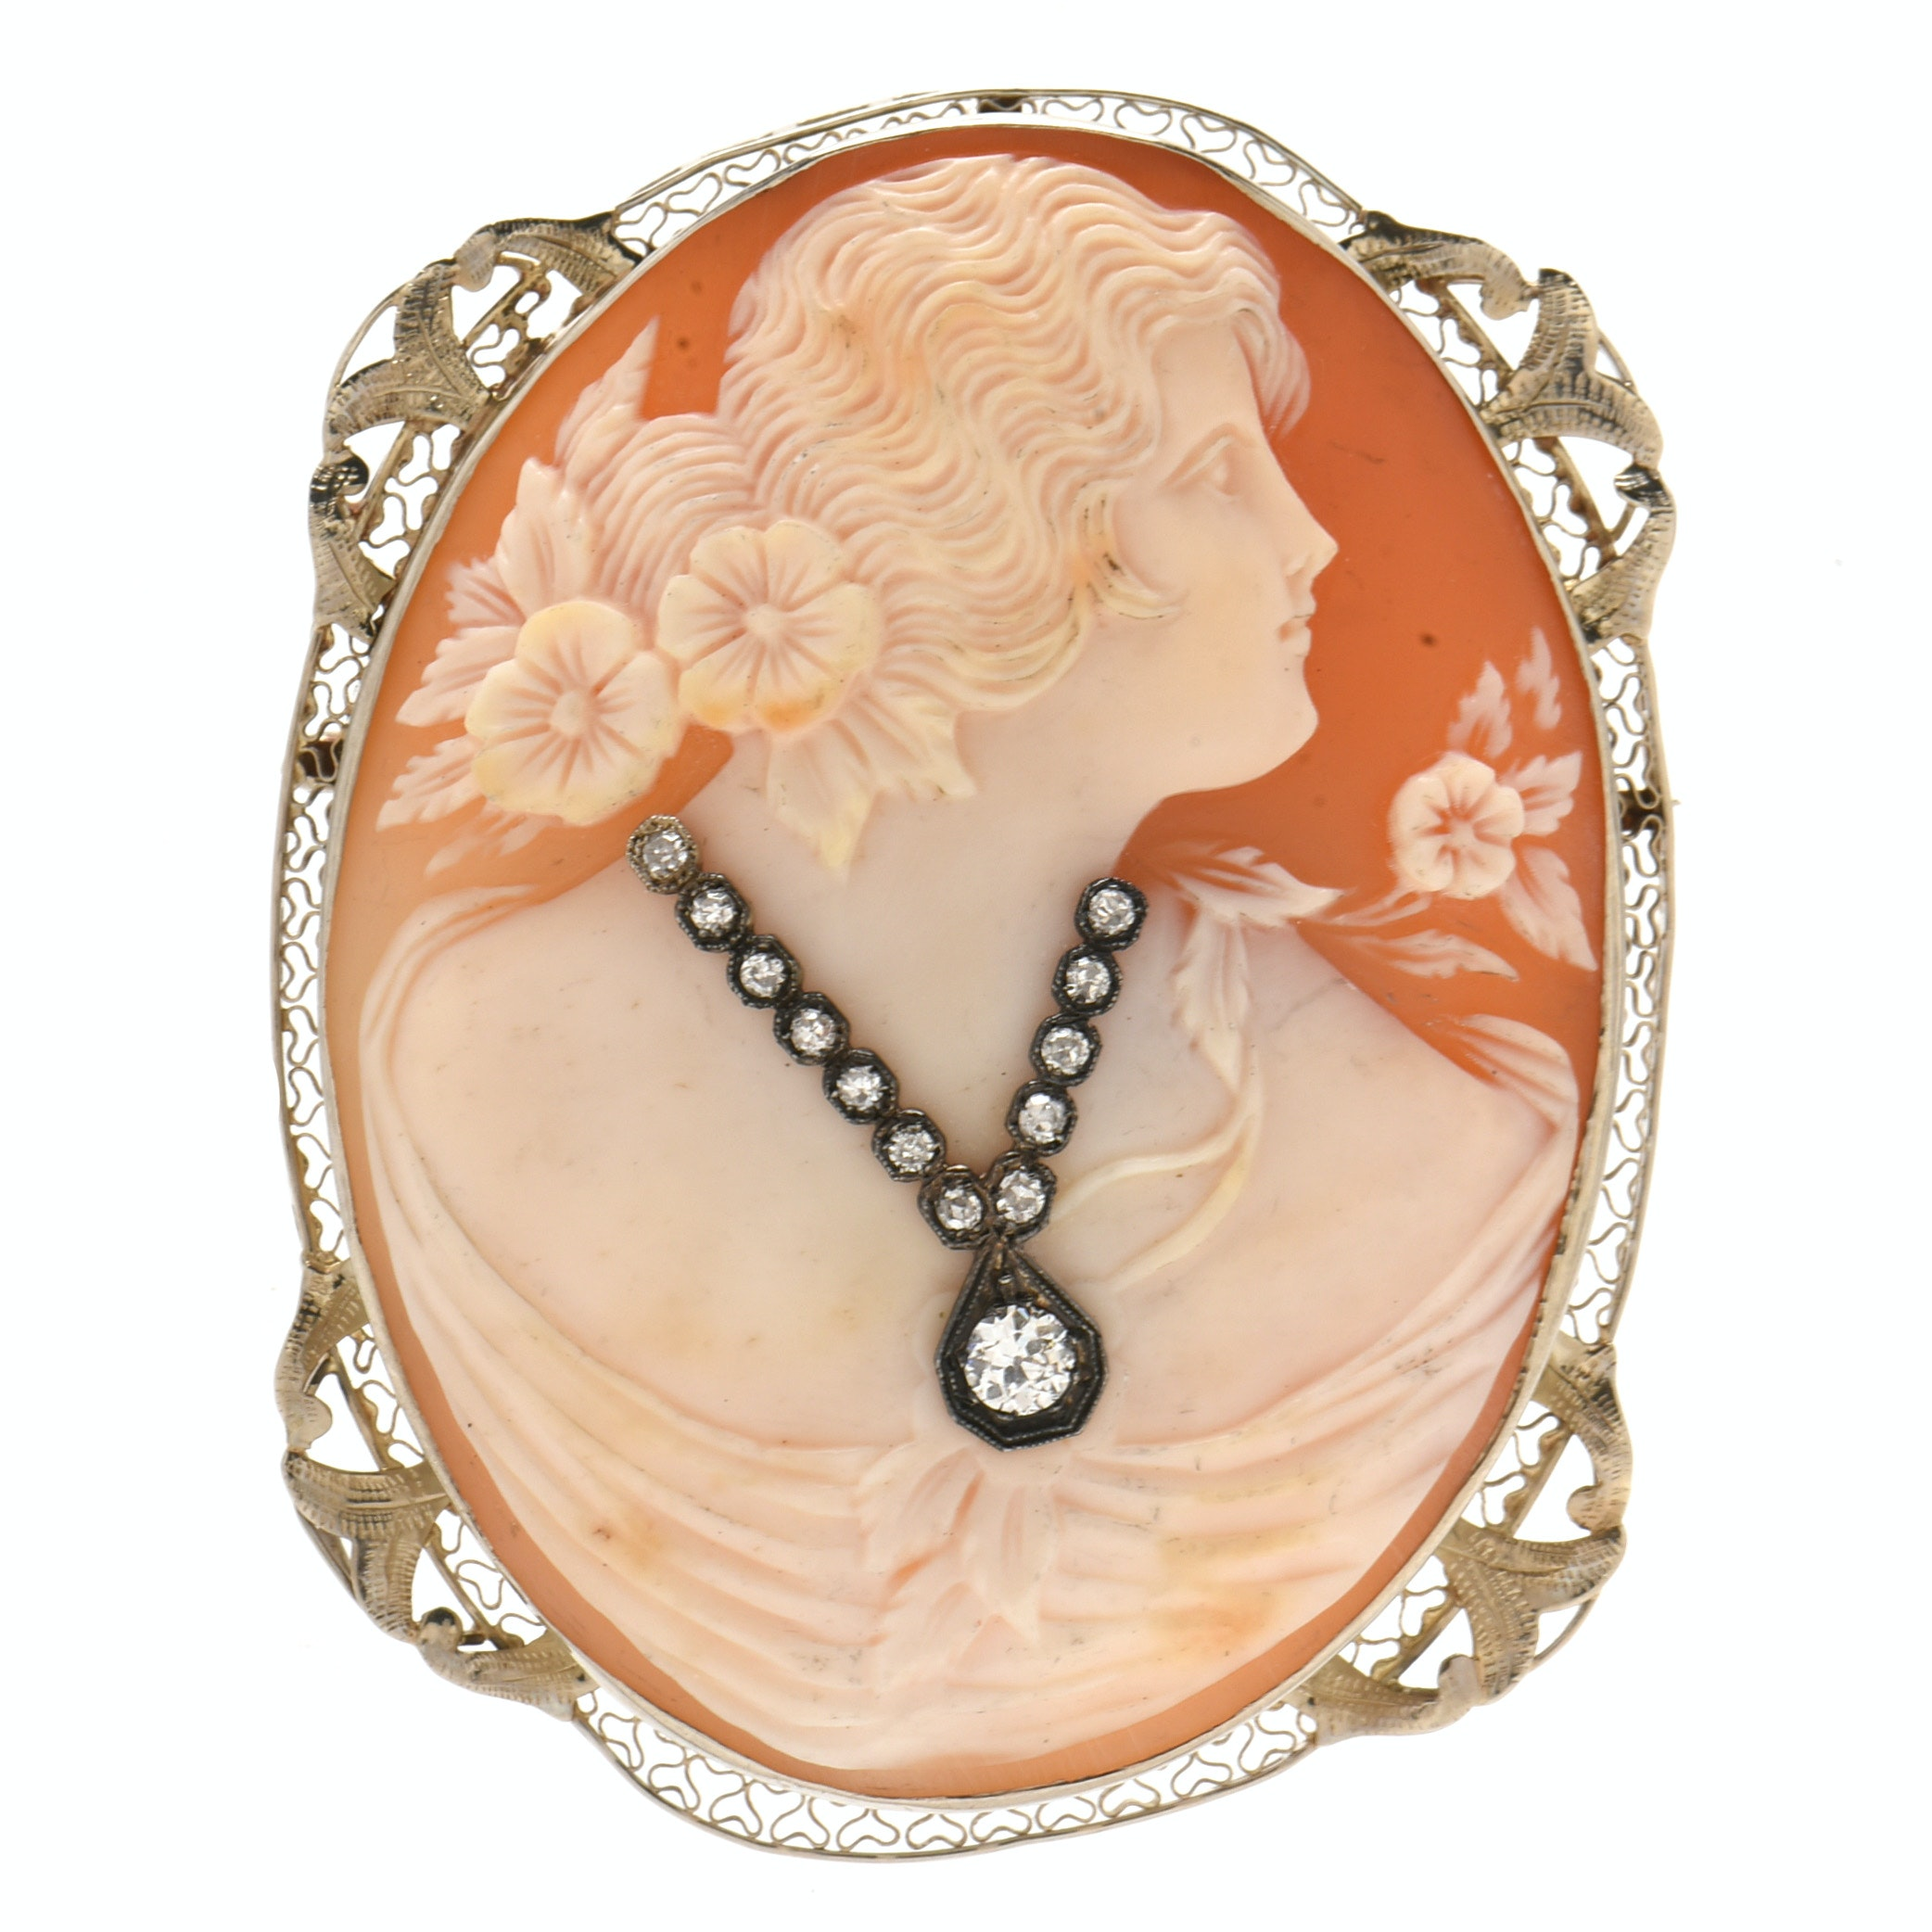 Vintage 14K White Gold Carved Shell Habillé Cameo with Diamonds Converter Brooch